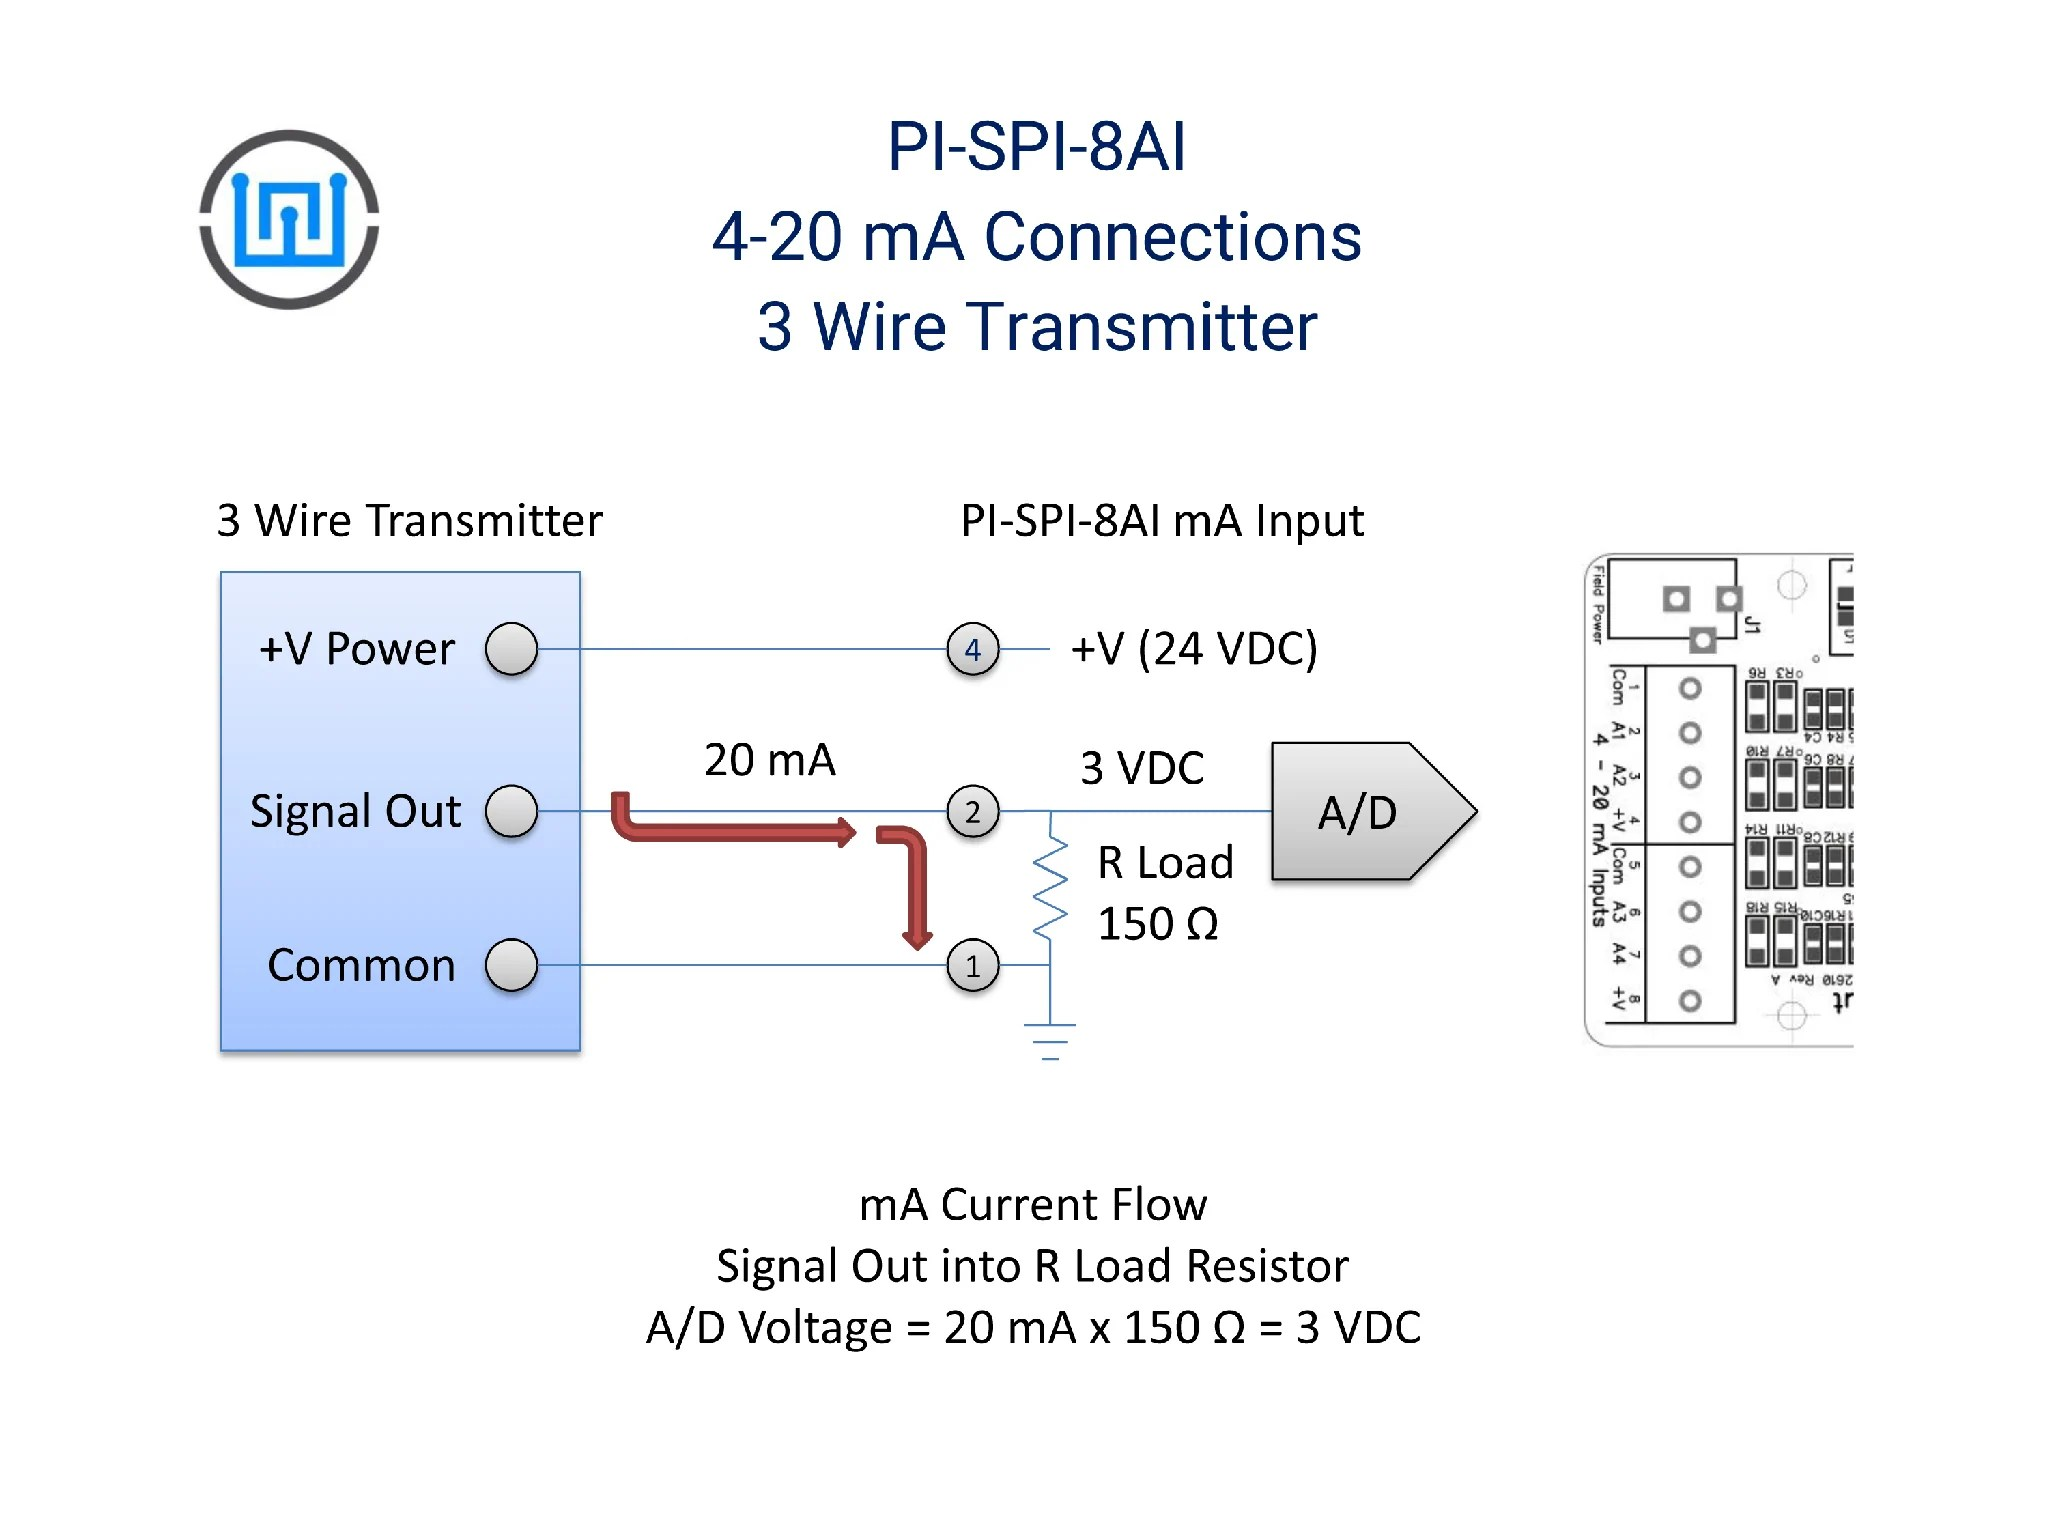 pi spi 8ai and a 2 wire transmitter [ 2048 x 1536 Pixel ]